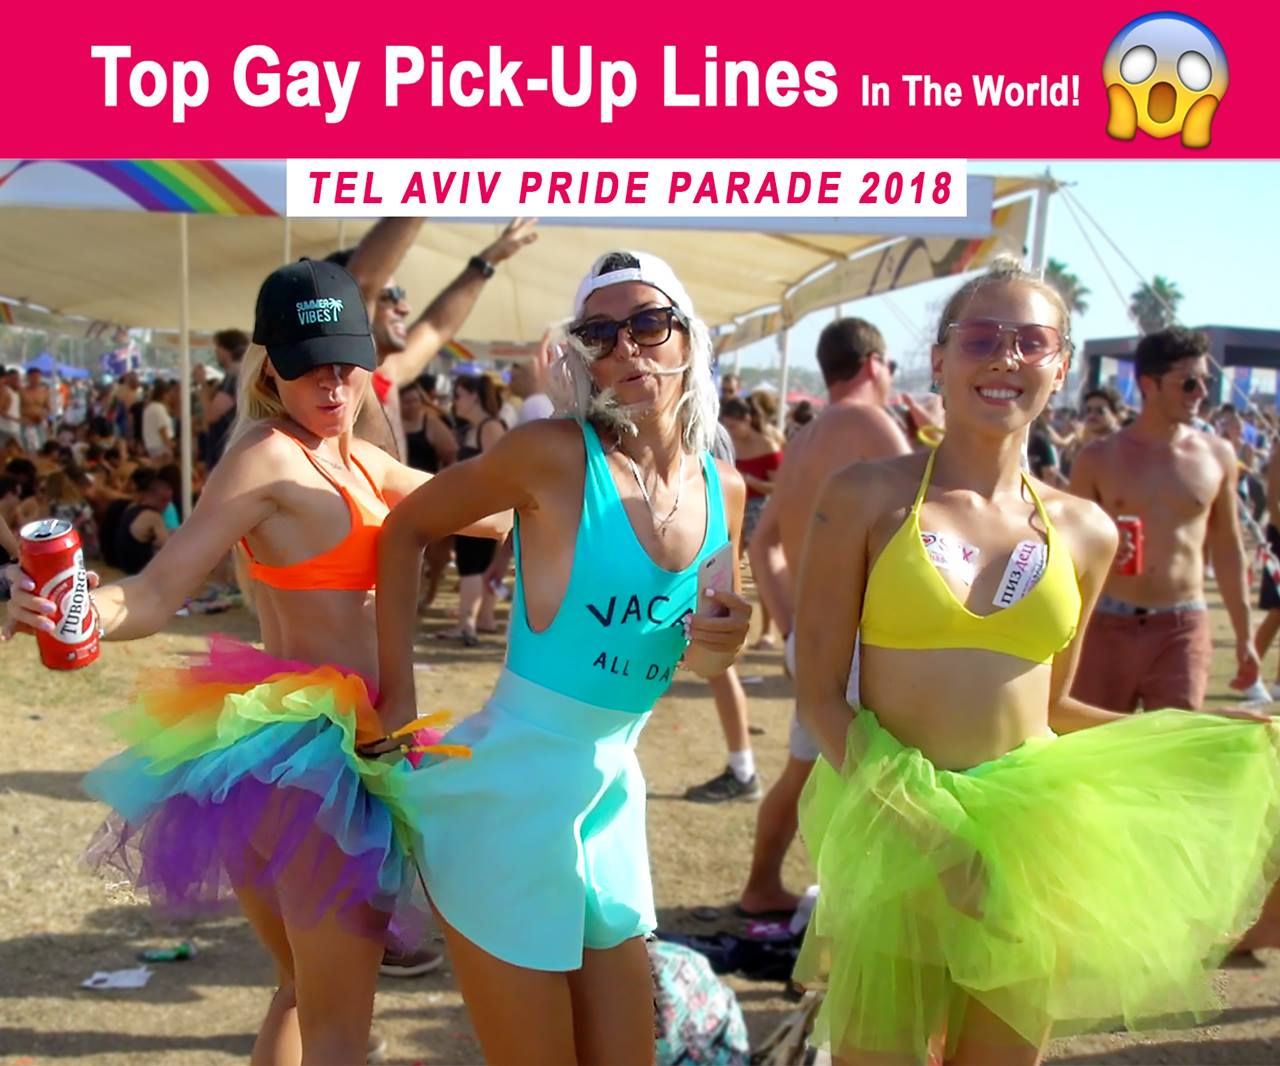 The Best Gay Pick-Up Lines In The World! (Tel-Aviv Pride Parade 2018)